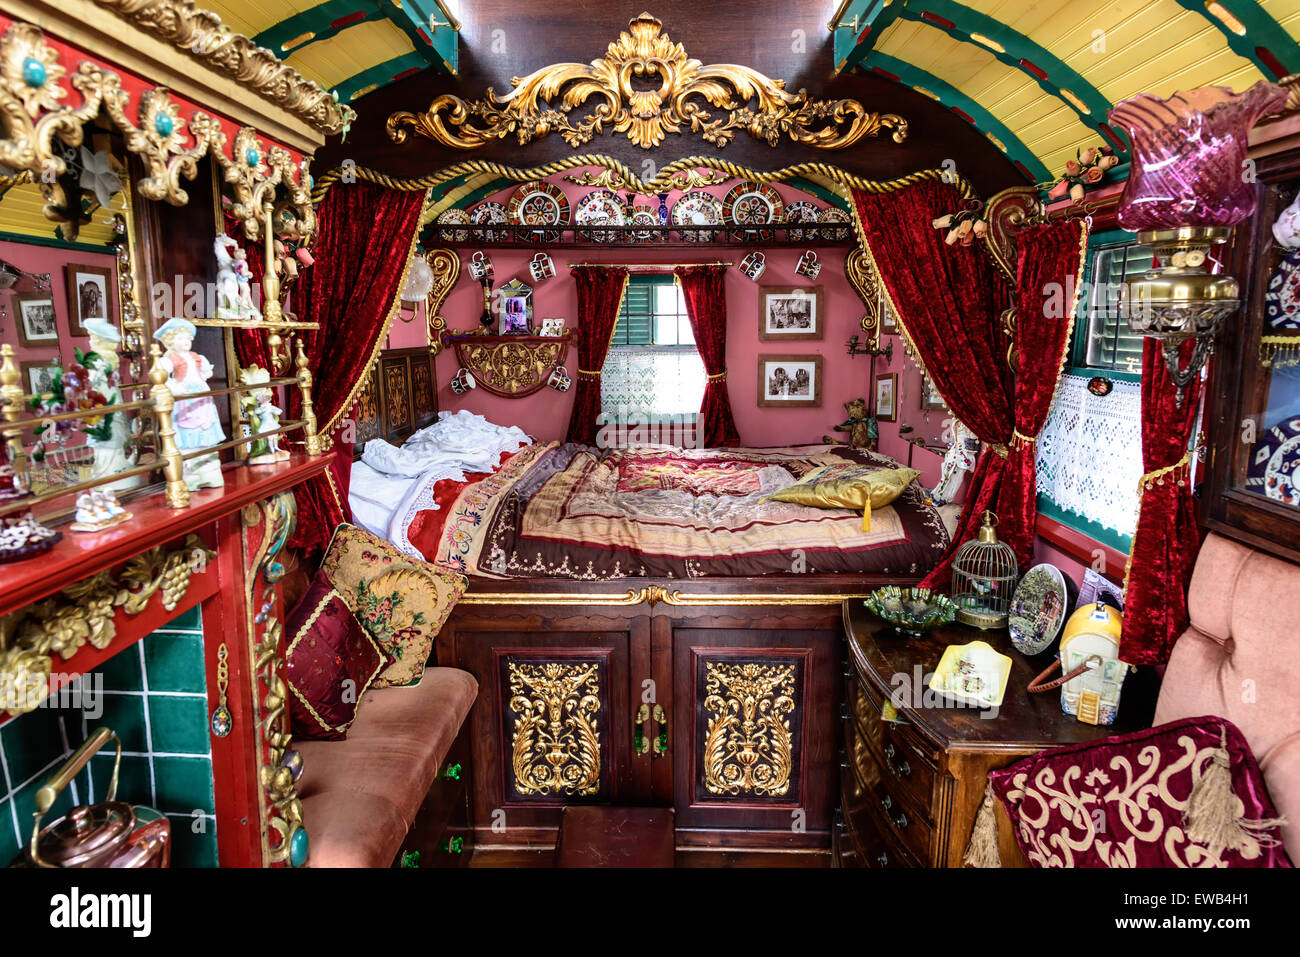 Castle For Sale Romania Gypsy Caravan Interior Stock Photos Amp Gypsy Caravan